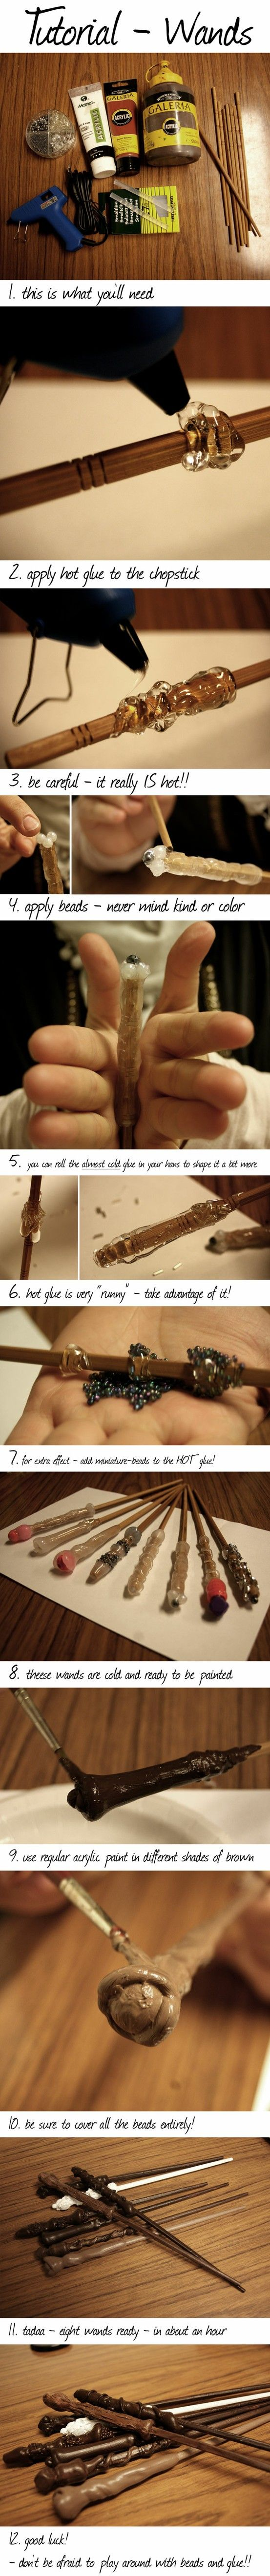 Wands - tutorial by *majann, coolest thing ive seen in a long long time - Click image to find more hot Pinterest pins